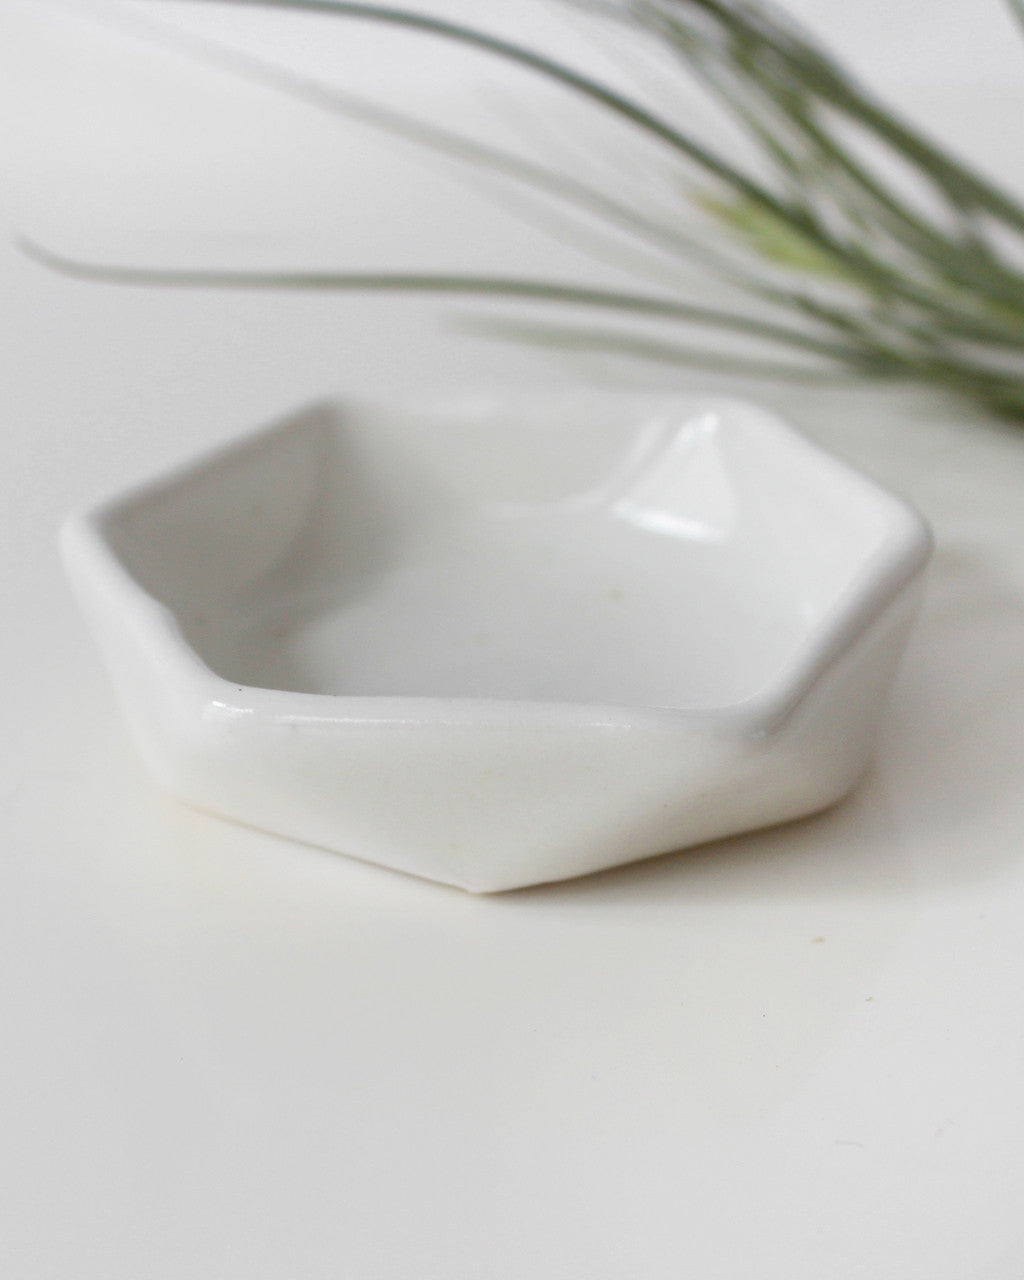 Convivial Production Hexagon Mini Dish - Convivial Production